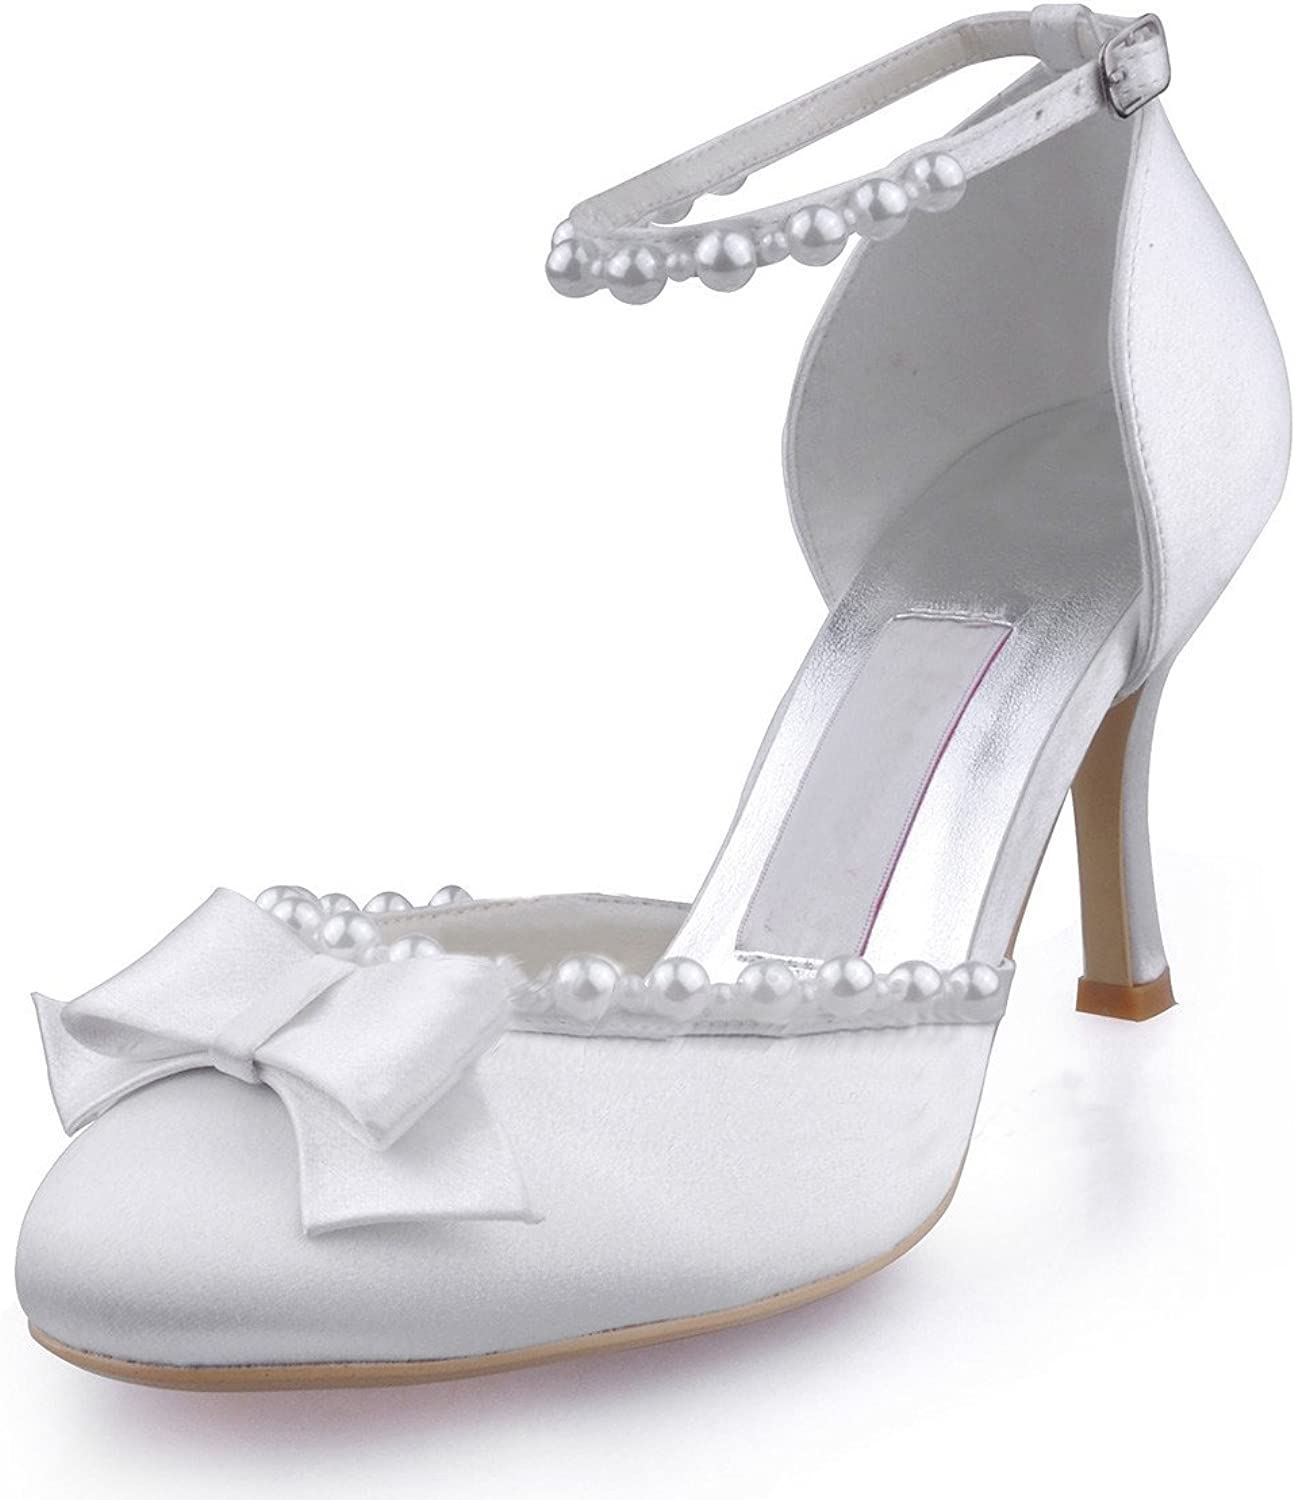 Minitoo Womens Pointy Toe Mid Heel Back Strap Bridal Wedding Satin Pump shoes